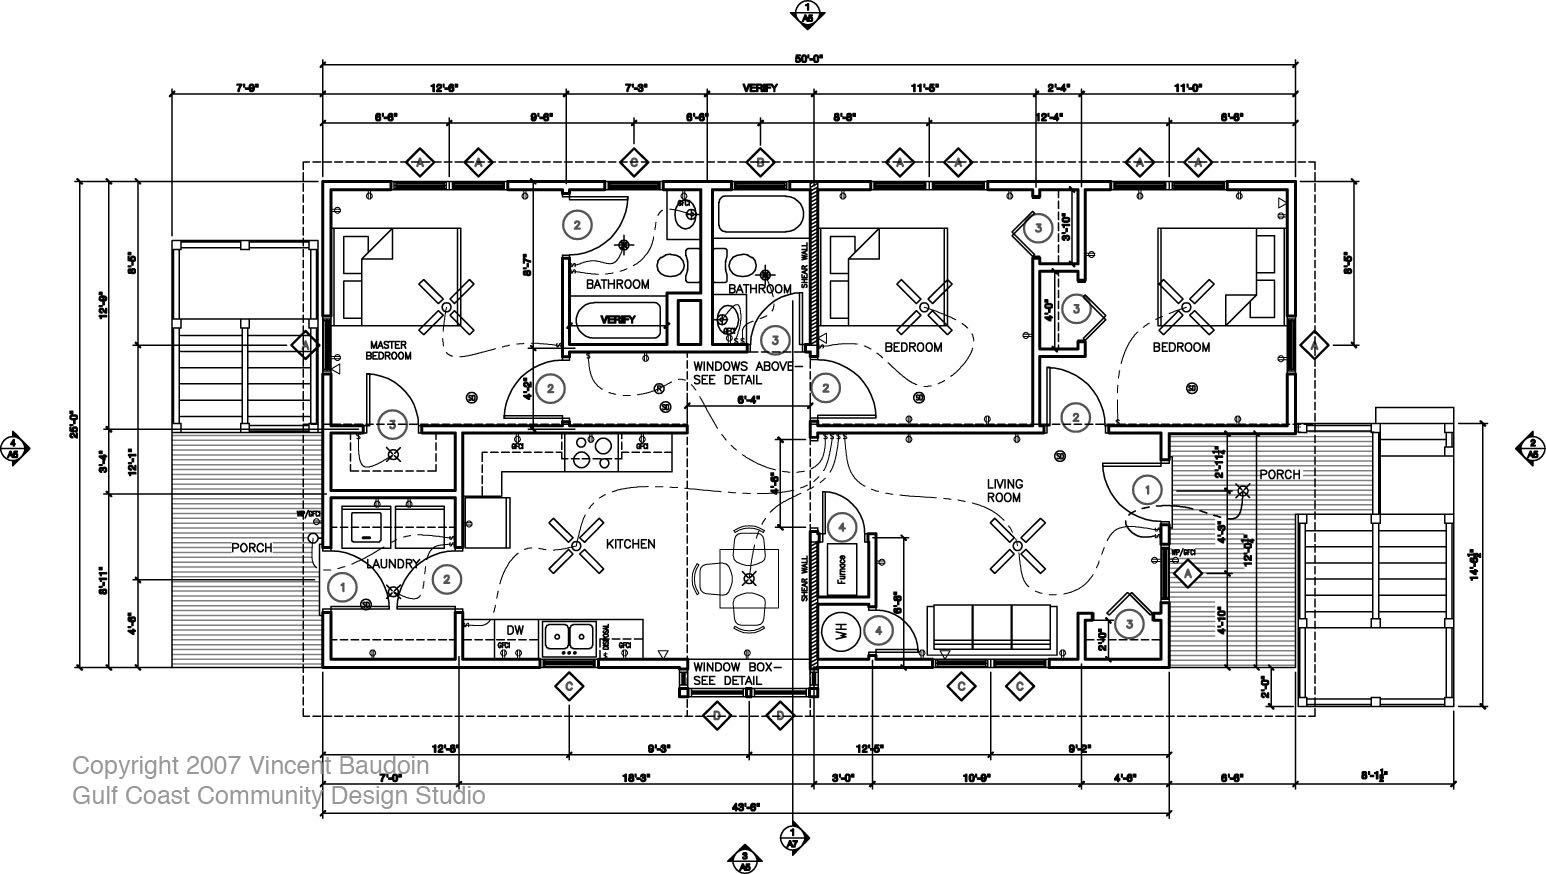 Running around southern live oak Architectural house plan styles